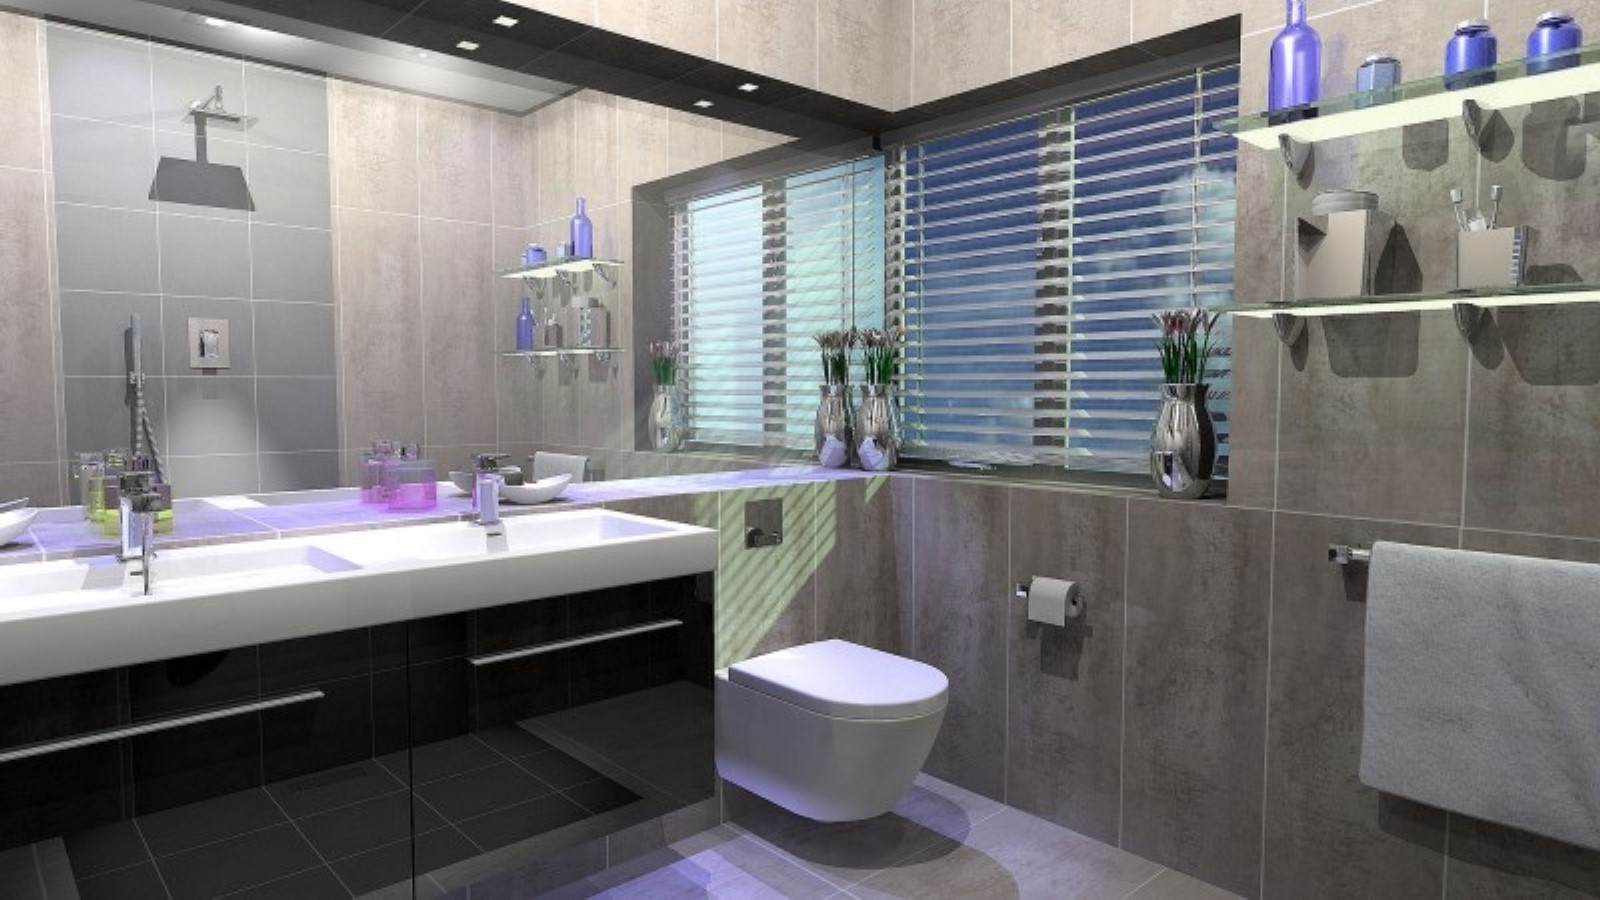 Floating toilet design also ultra modern glass wall shelves for bathroom idea feat black and - Contemporary bathroom designs uk ...